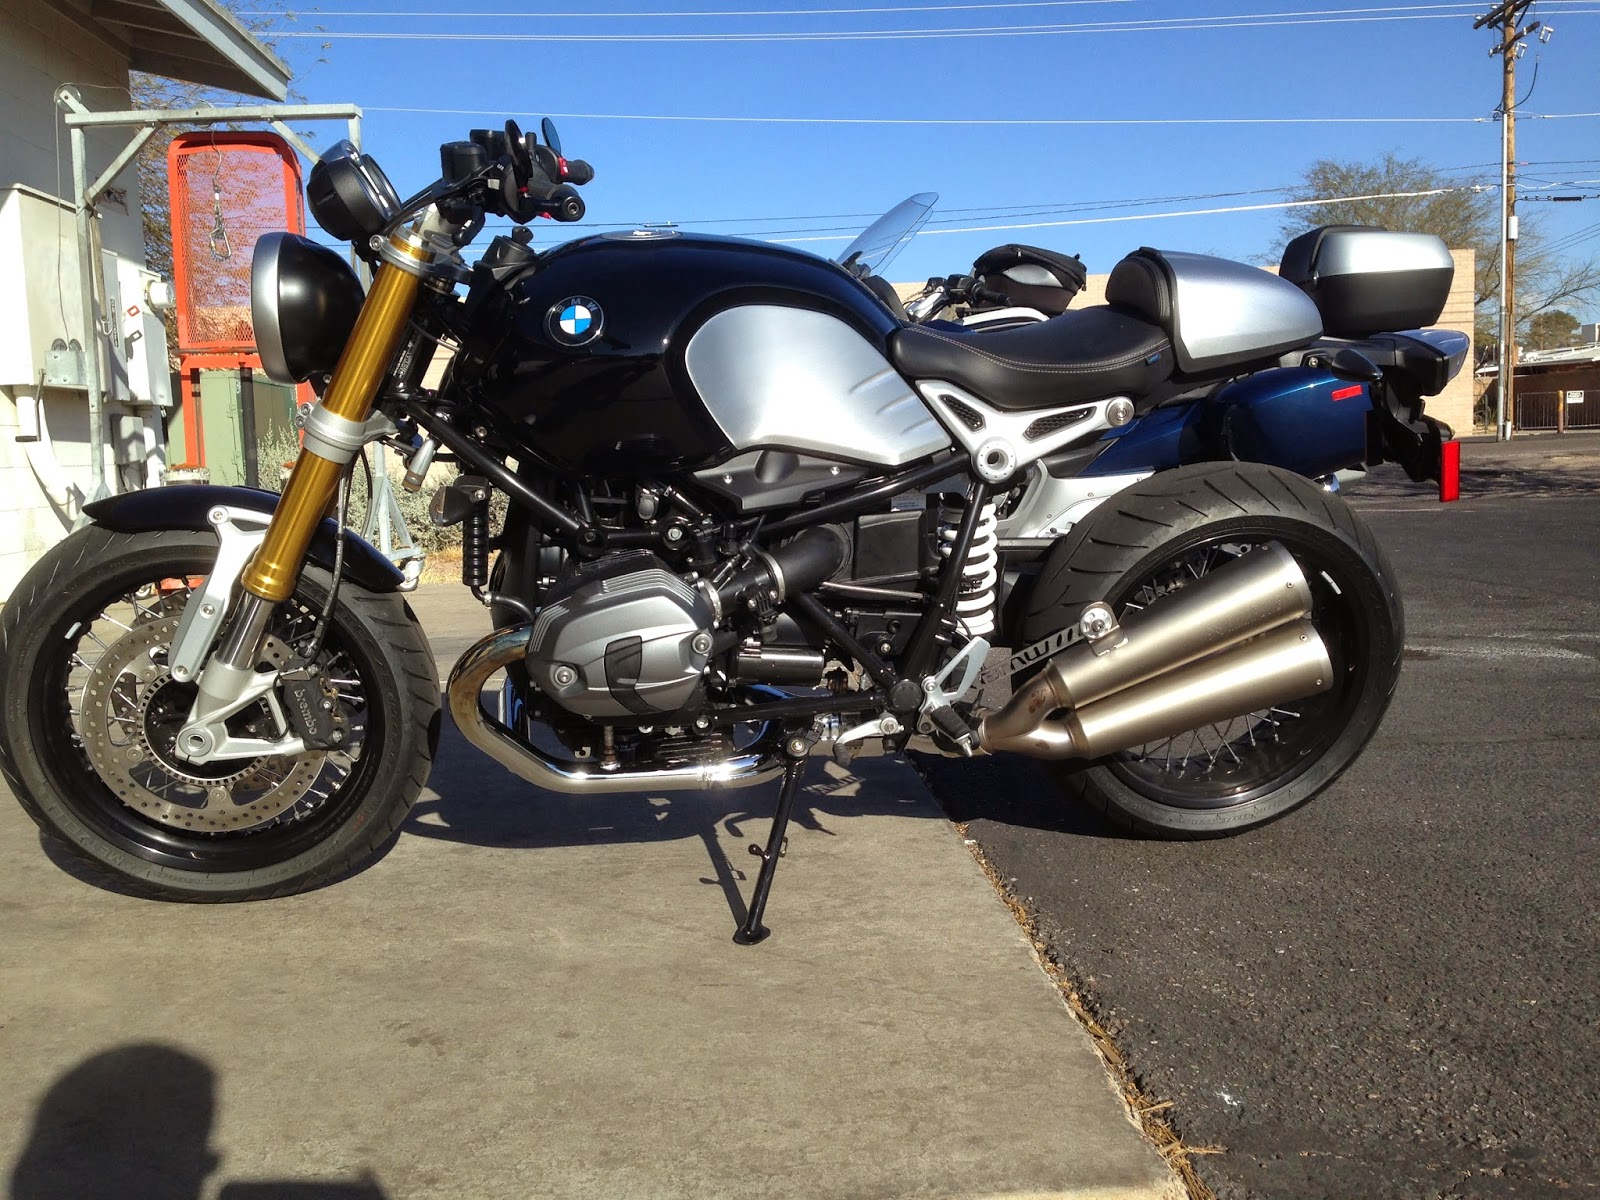 Ride Review Rninet Iron Horse Bmw Blog Twin Bikes Is Serious As Are The Big Discs And Calipers Up Front This Bike Looks Like Something Fonzi Would Have Been Proud To Once On Board